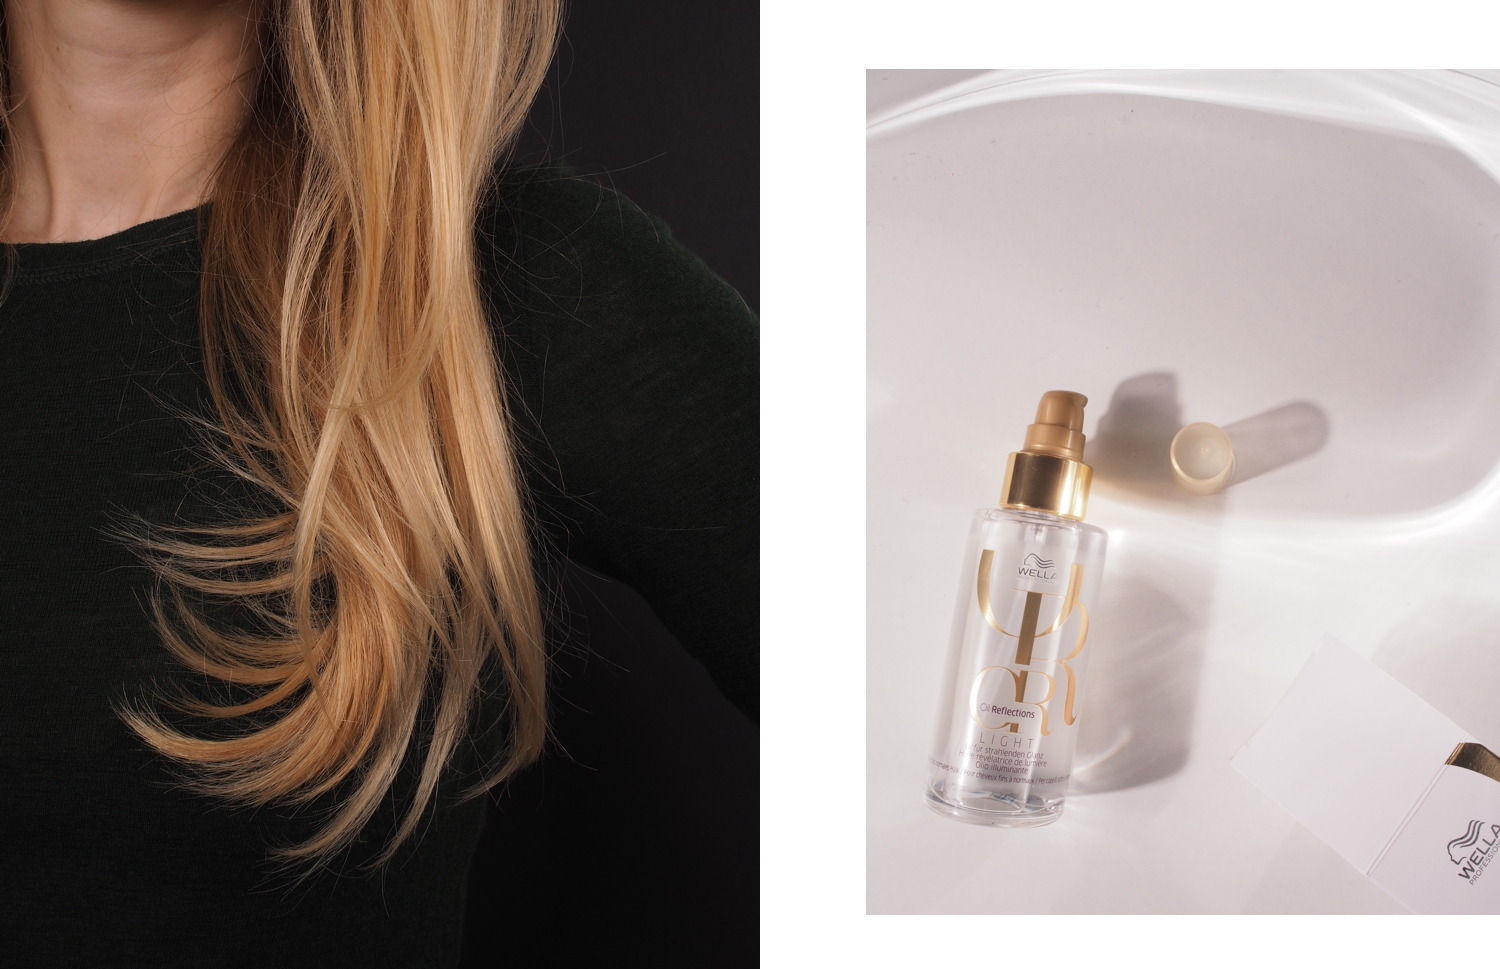 beautyblog-beauty-blog-bare-minds-Elina-Neumann bare minds Wella Professionals Oil Reflections 5